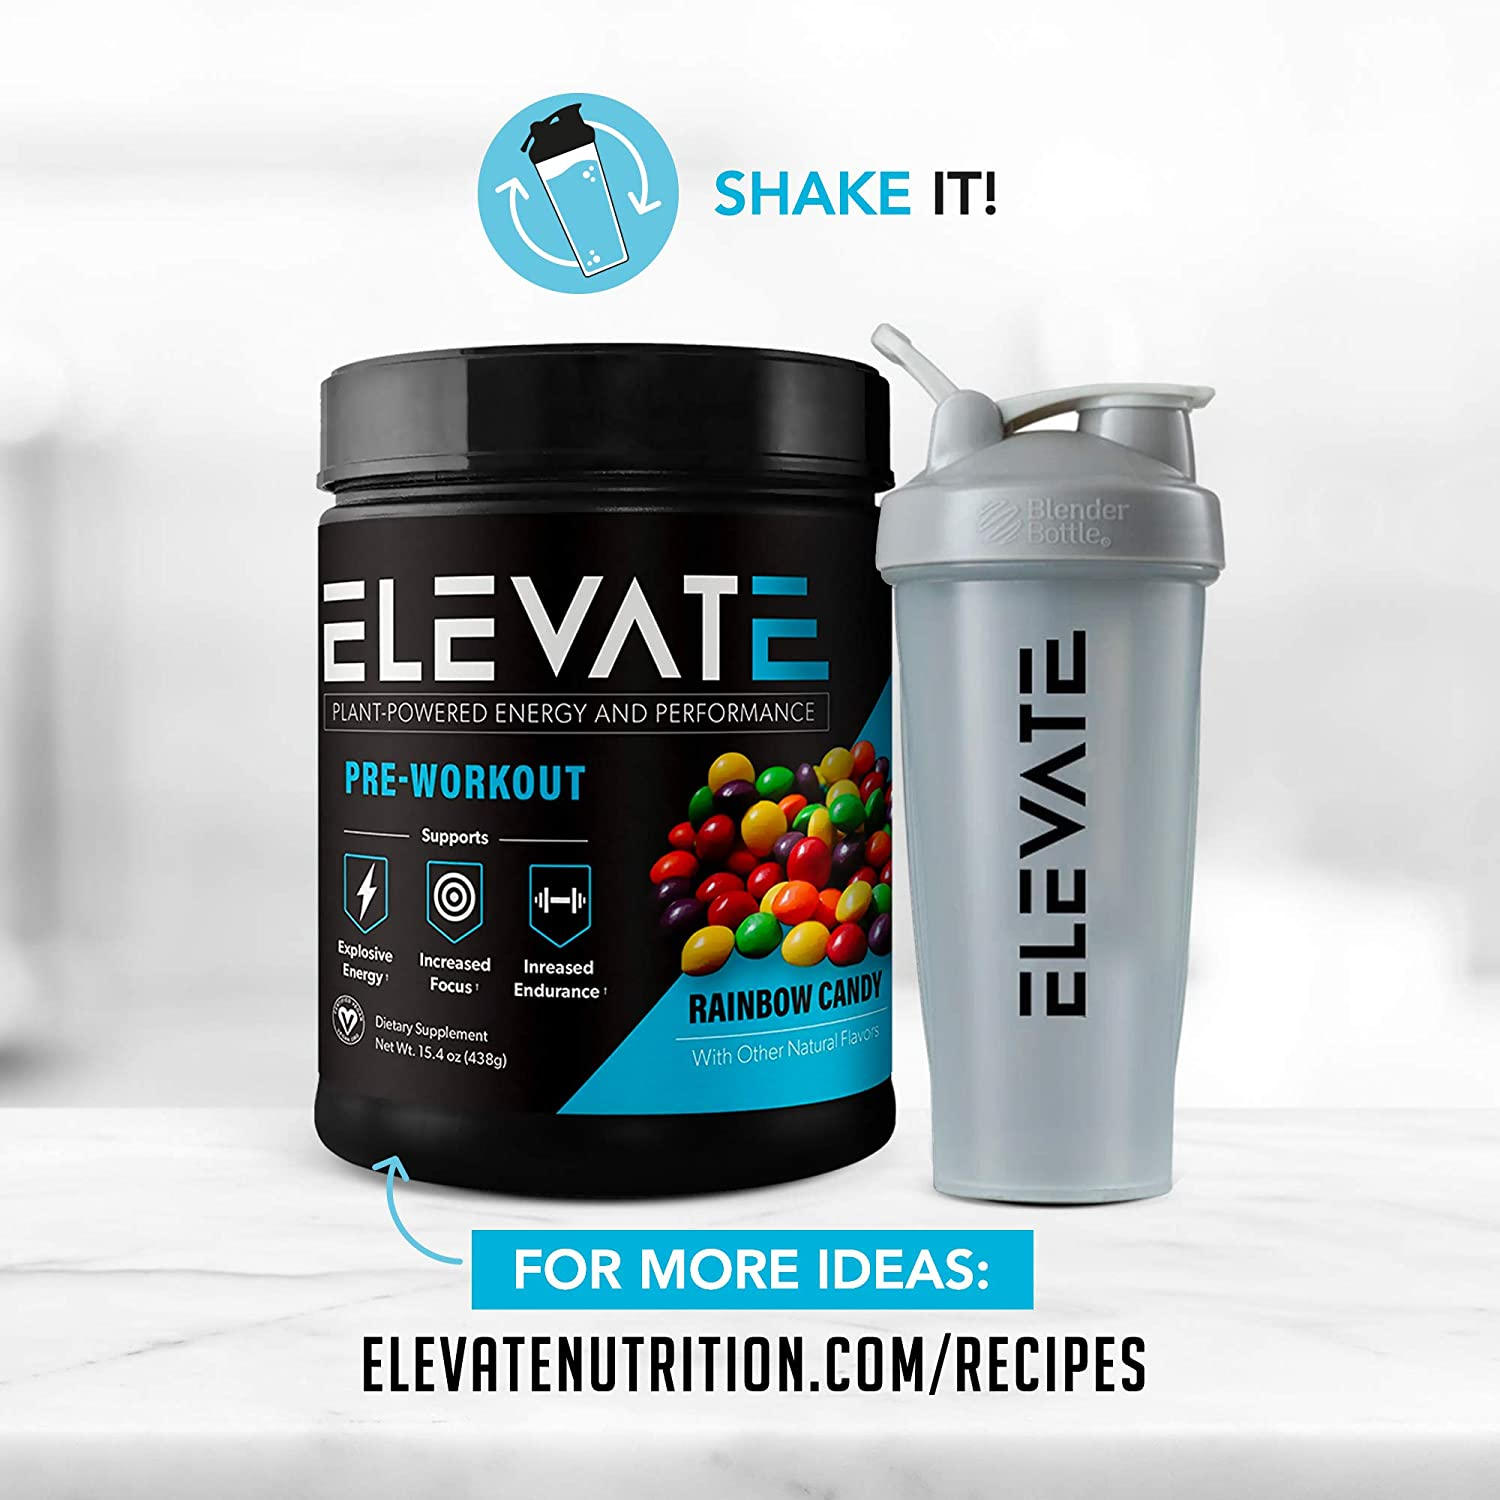 using-elevate-rainbow-candy-pre-workout-powder-before-workout